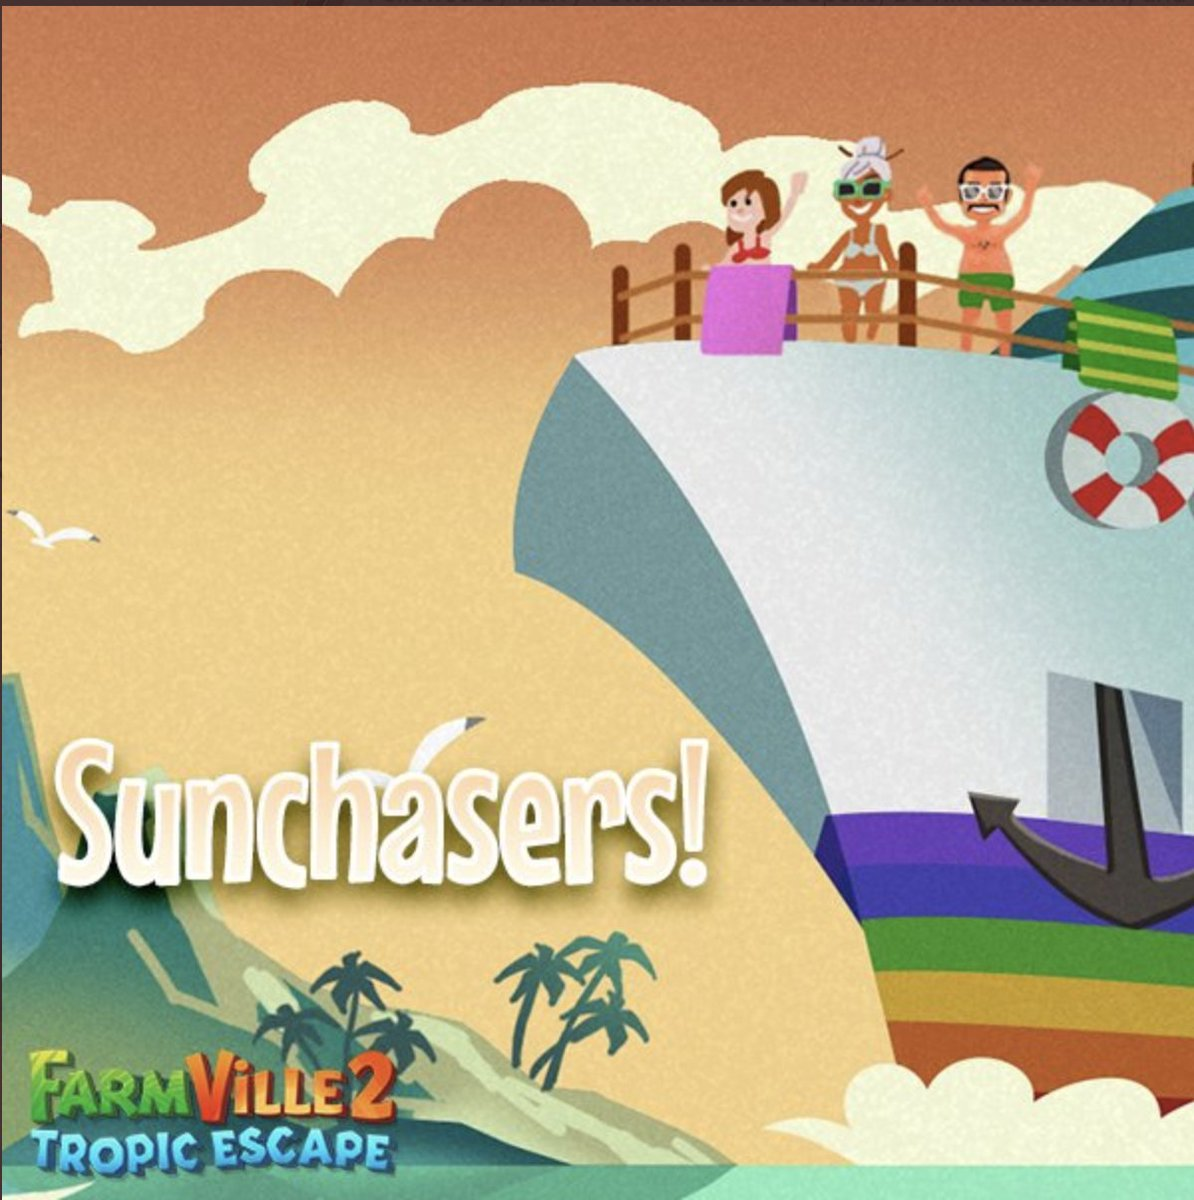 Relax and tan from home with the 🚢 Sunchasers Cruise, sailing in on @FVTropicEscape.  #FarmVille2TropicEscape 🏝  View Guide ☀️   Play now ▶️